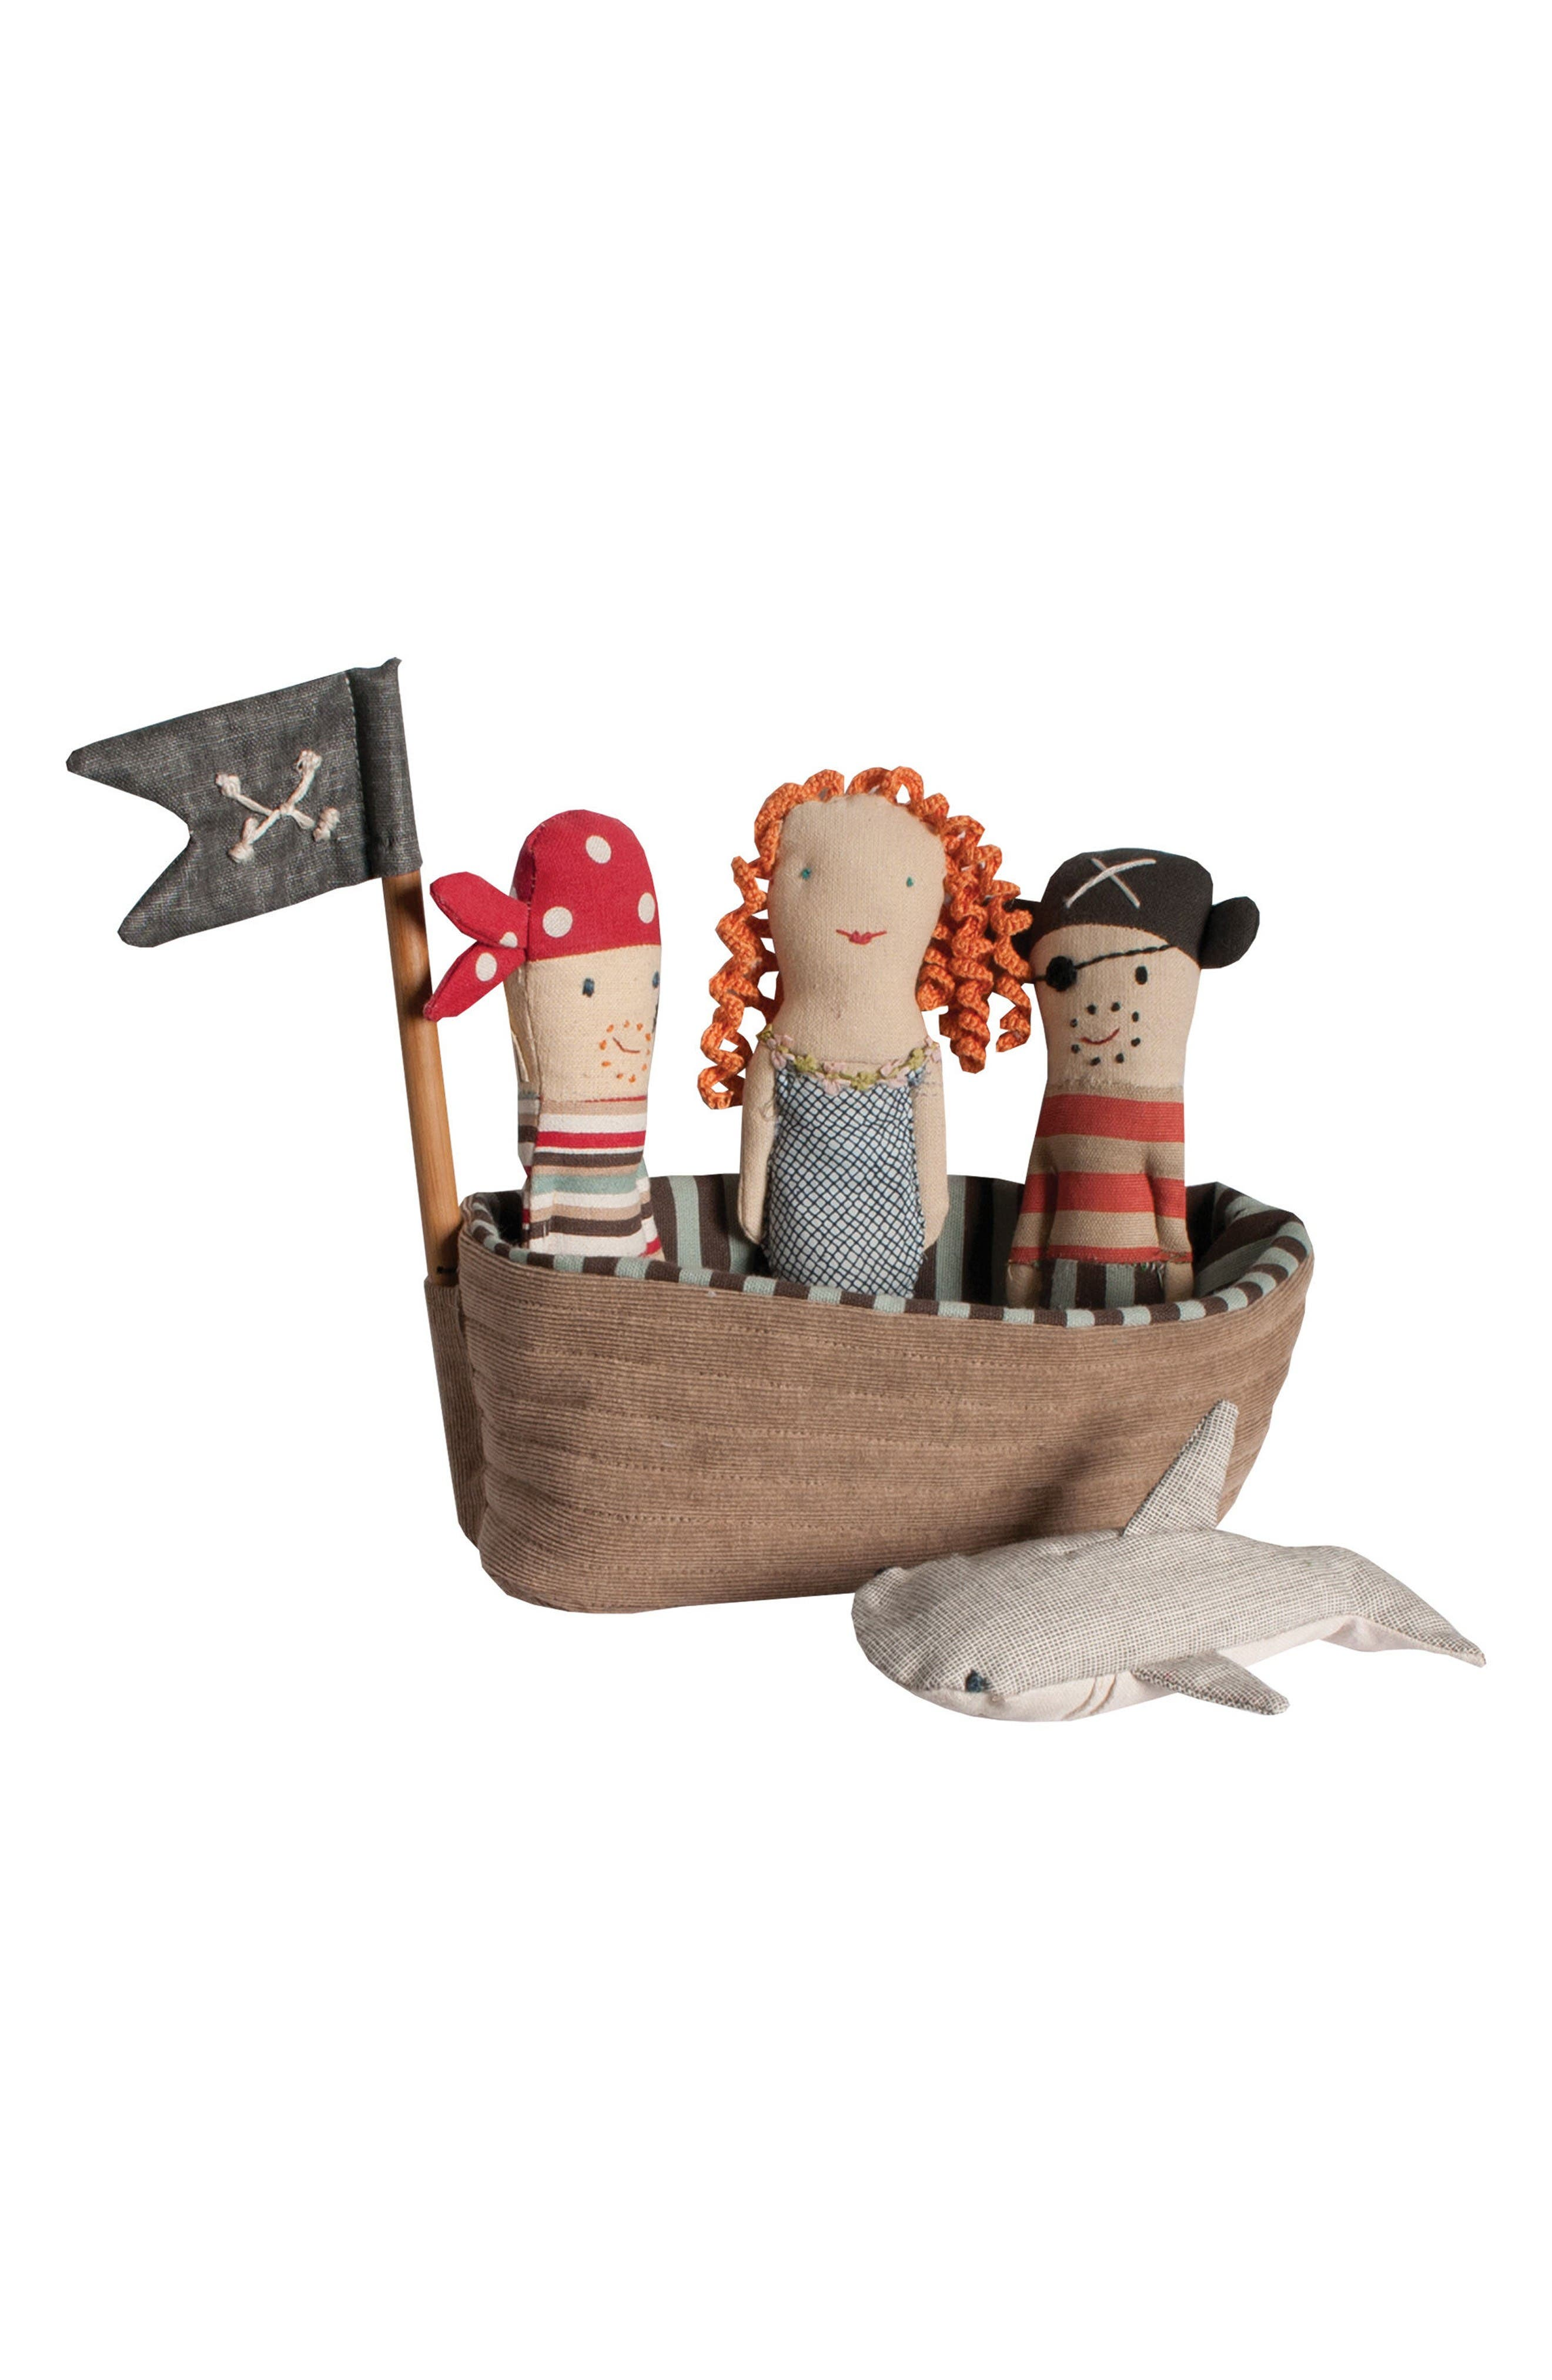 Alternate Image 1 Selected - Maileg Pirate Ship Rattle 5-Piece Play Set